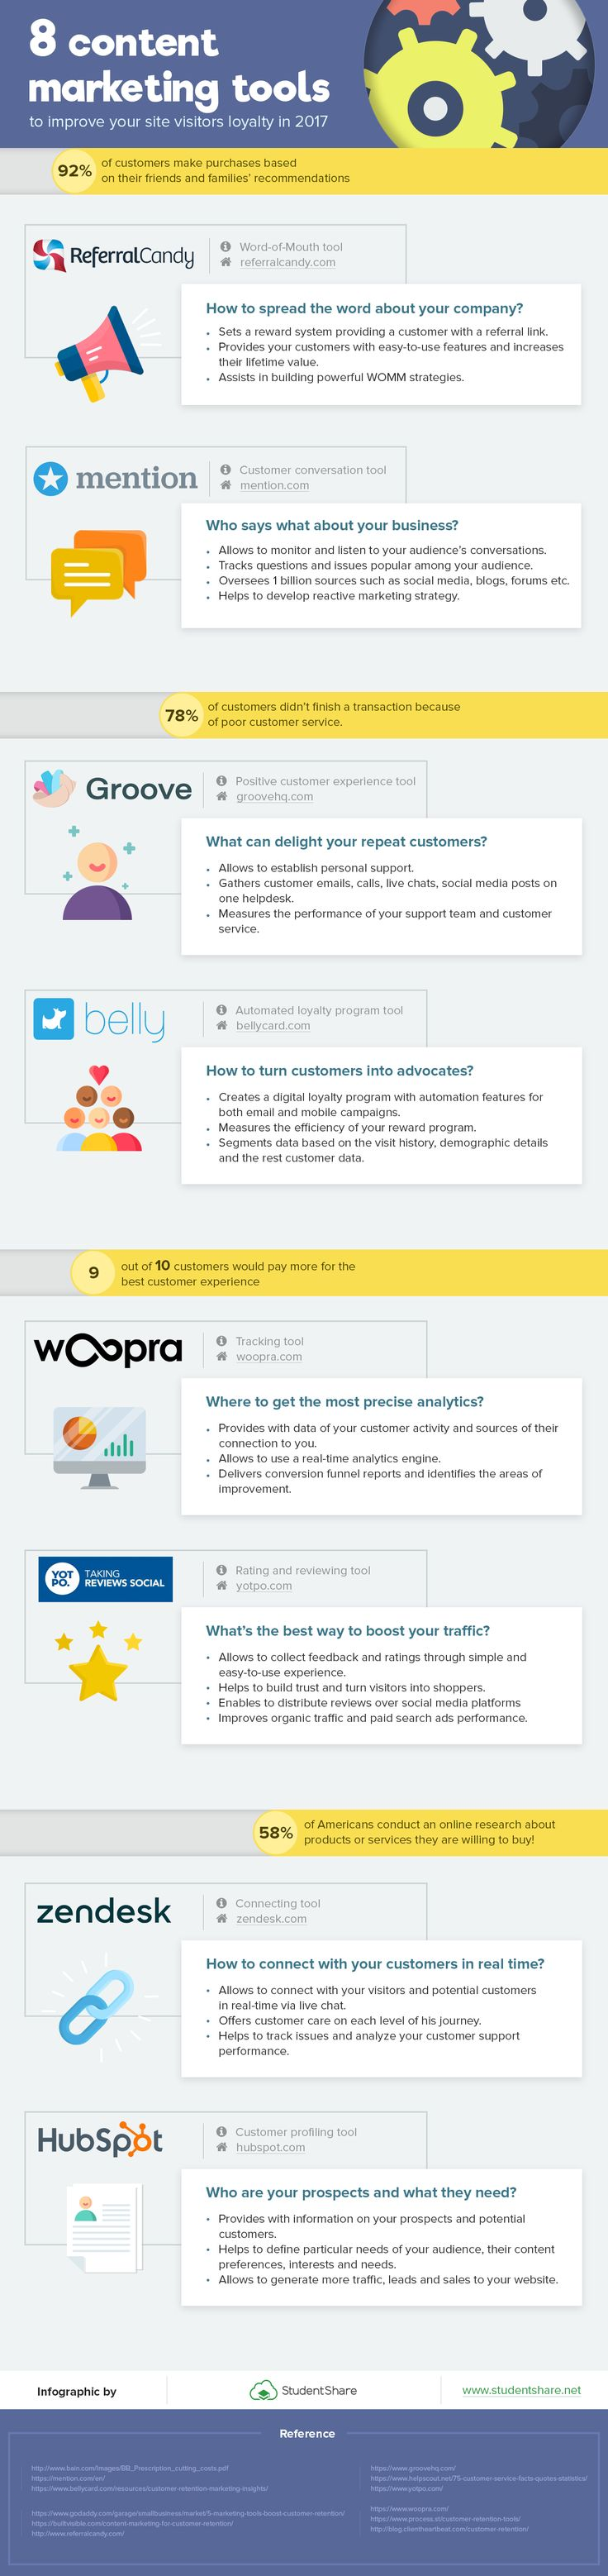 8 Content Marketing Tools To Improve Visitor Loyalty #Infographic #ContentMarketing